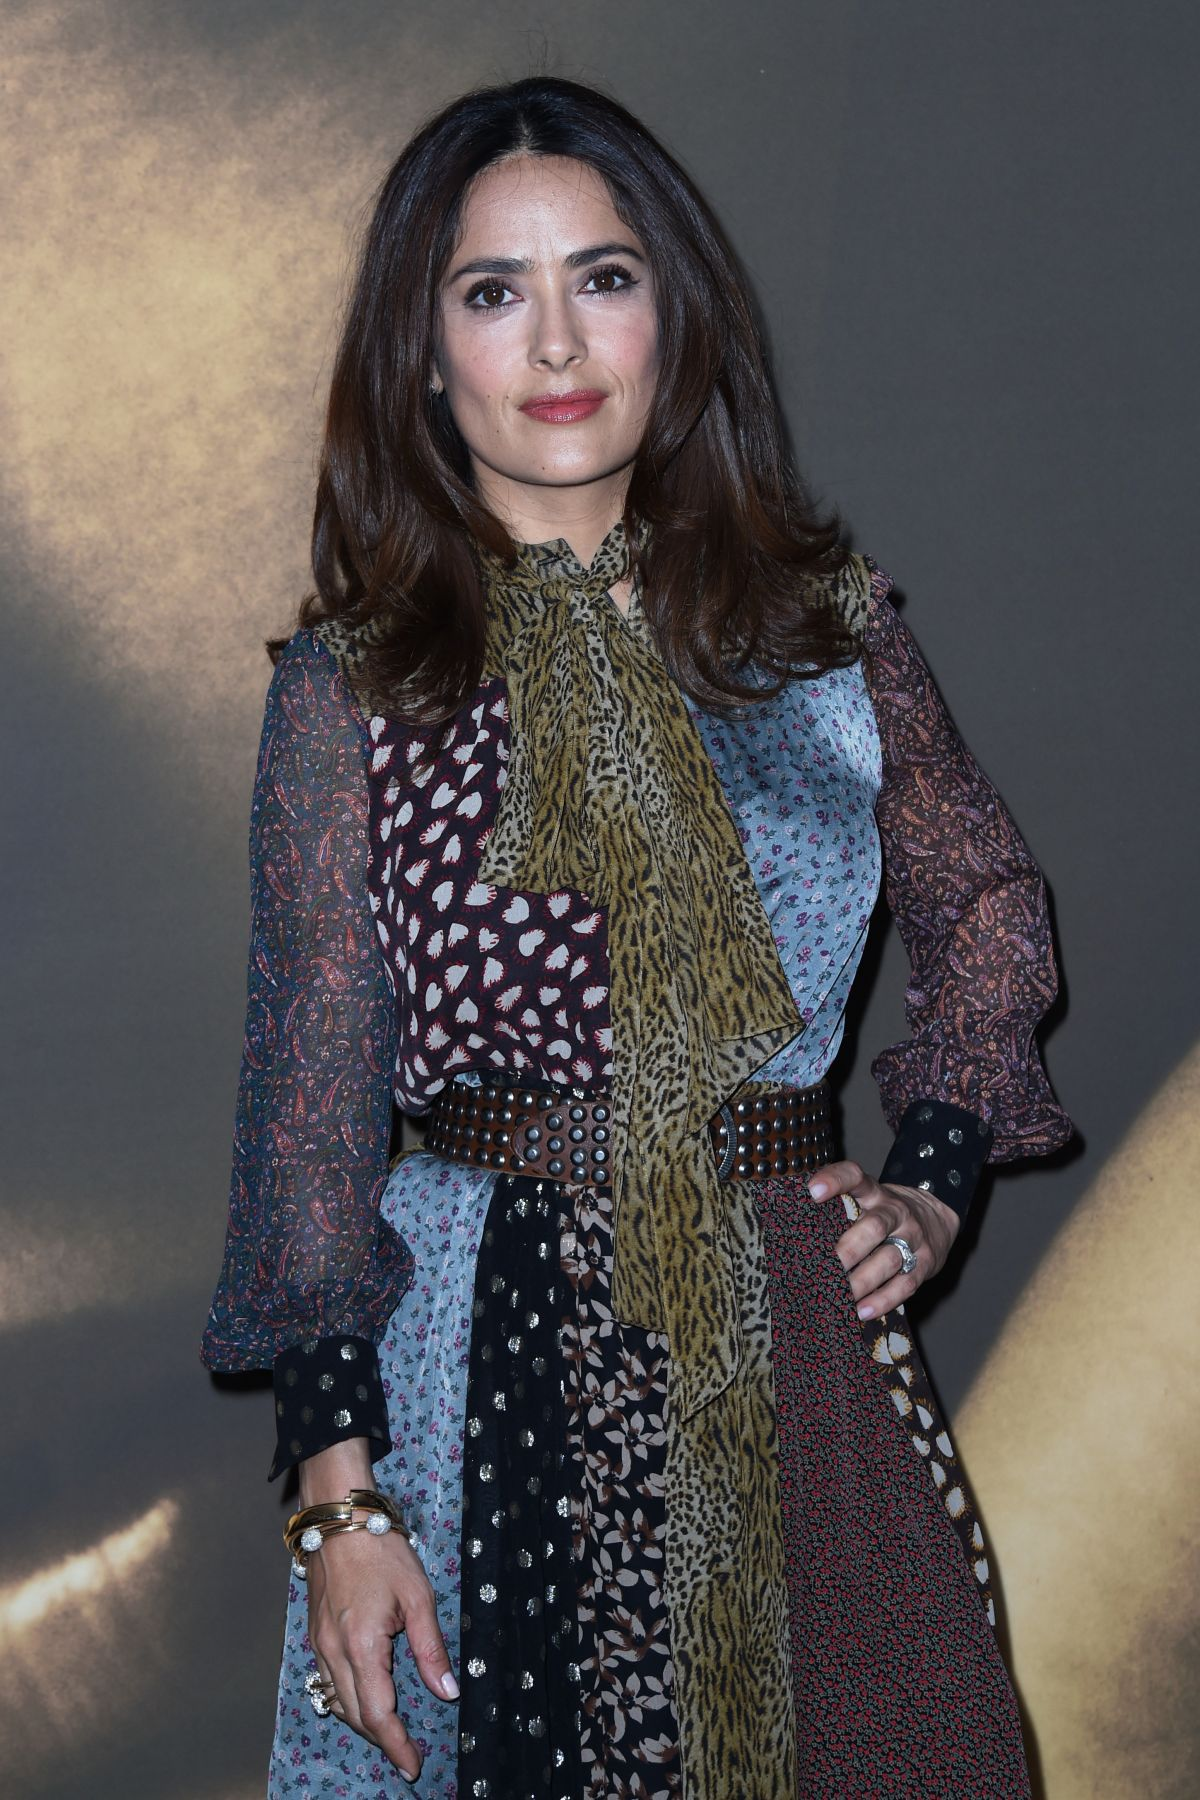 salma-hayek-saint-laurent-kering-talks-women-motion